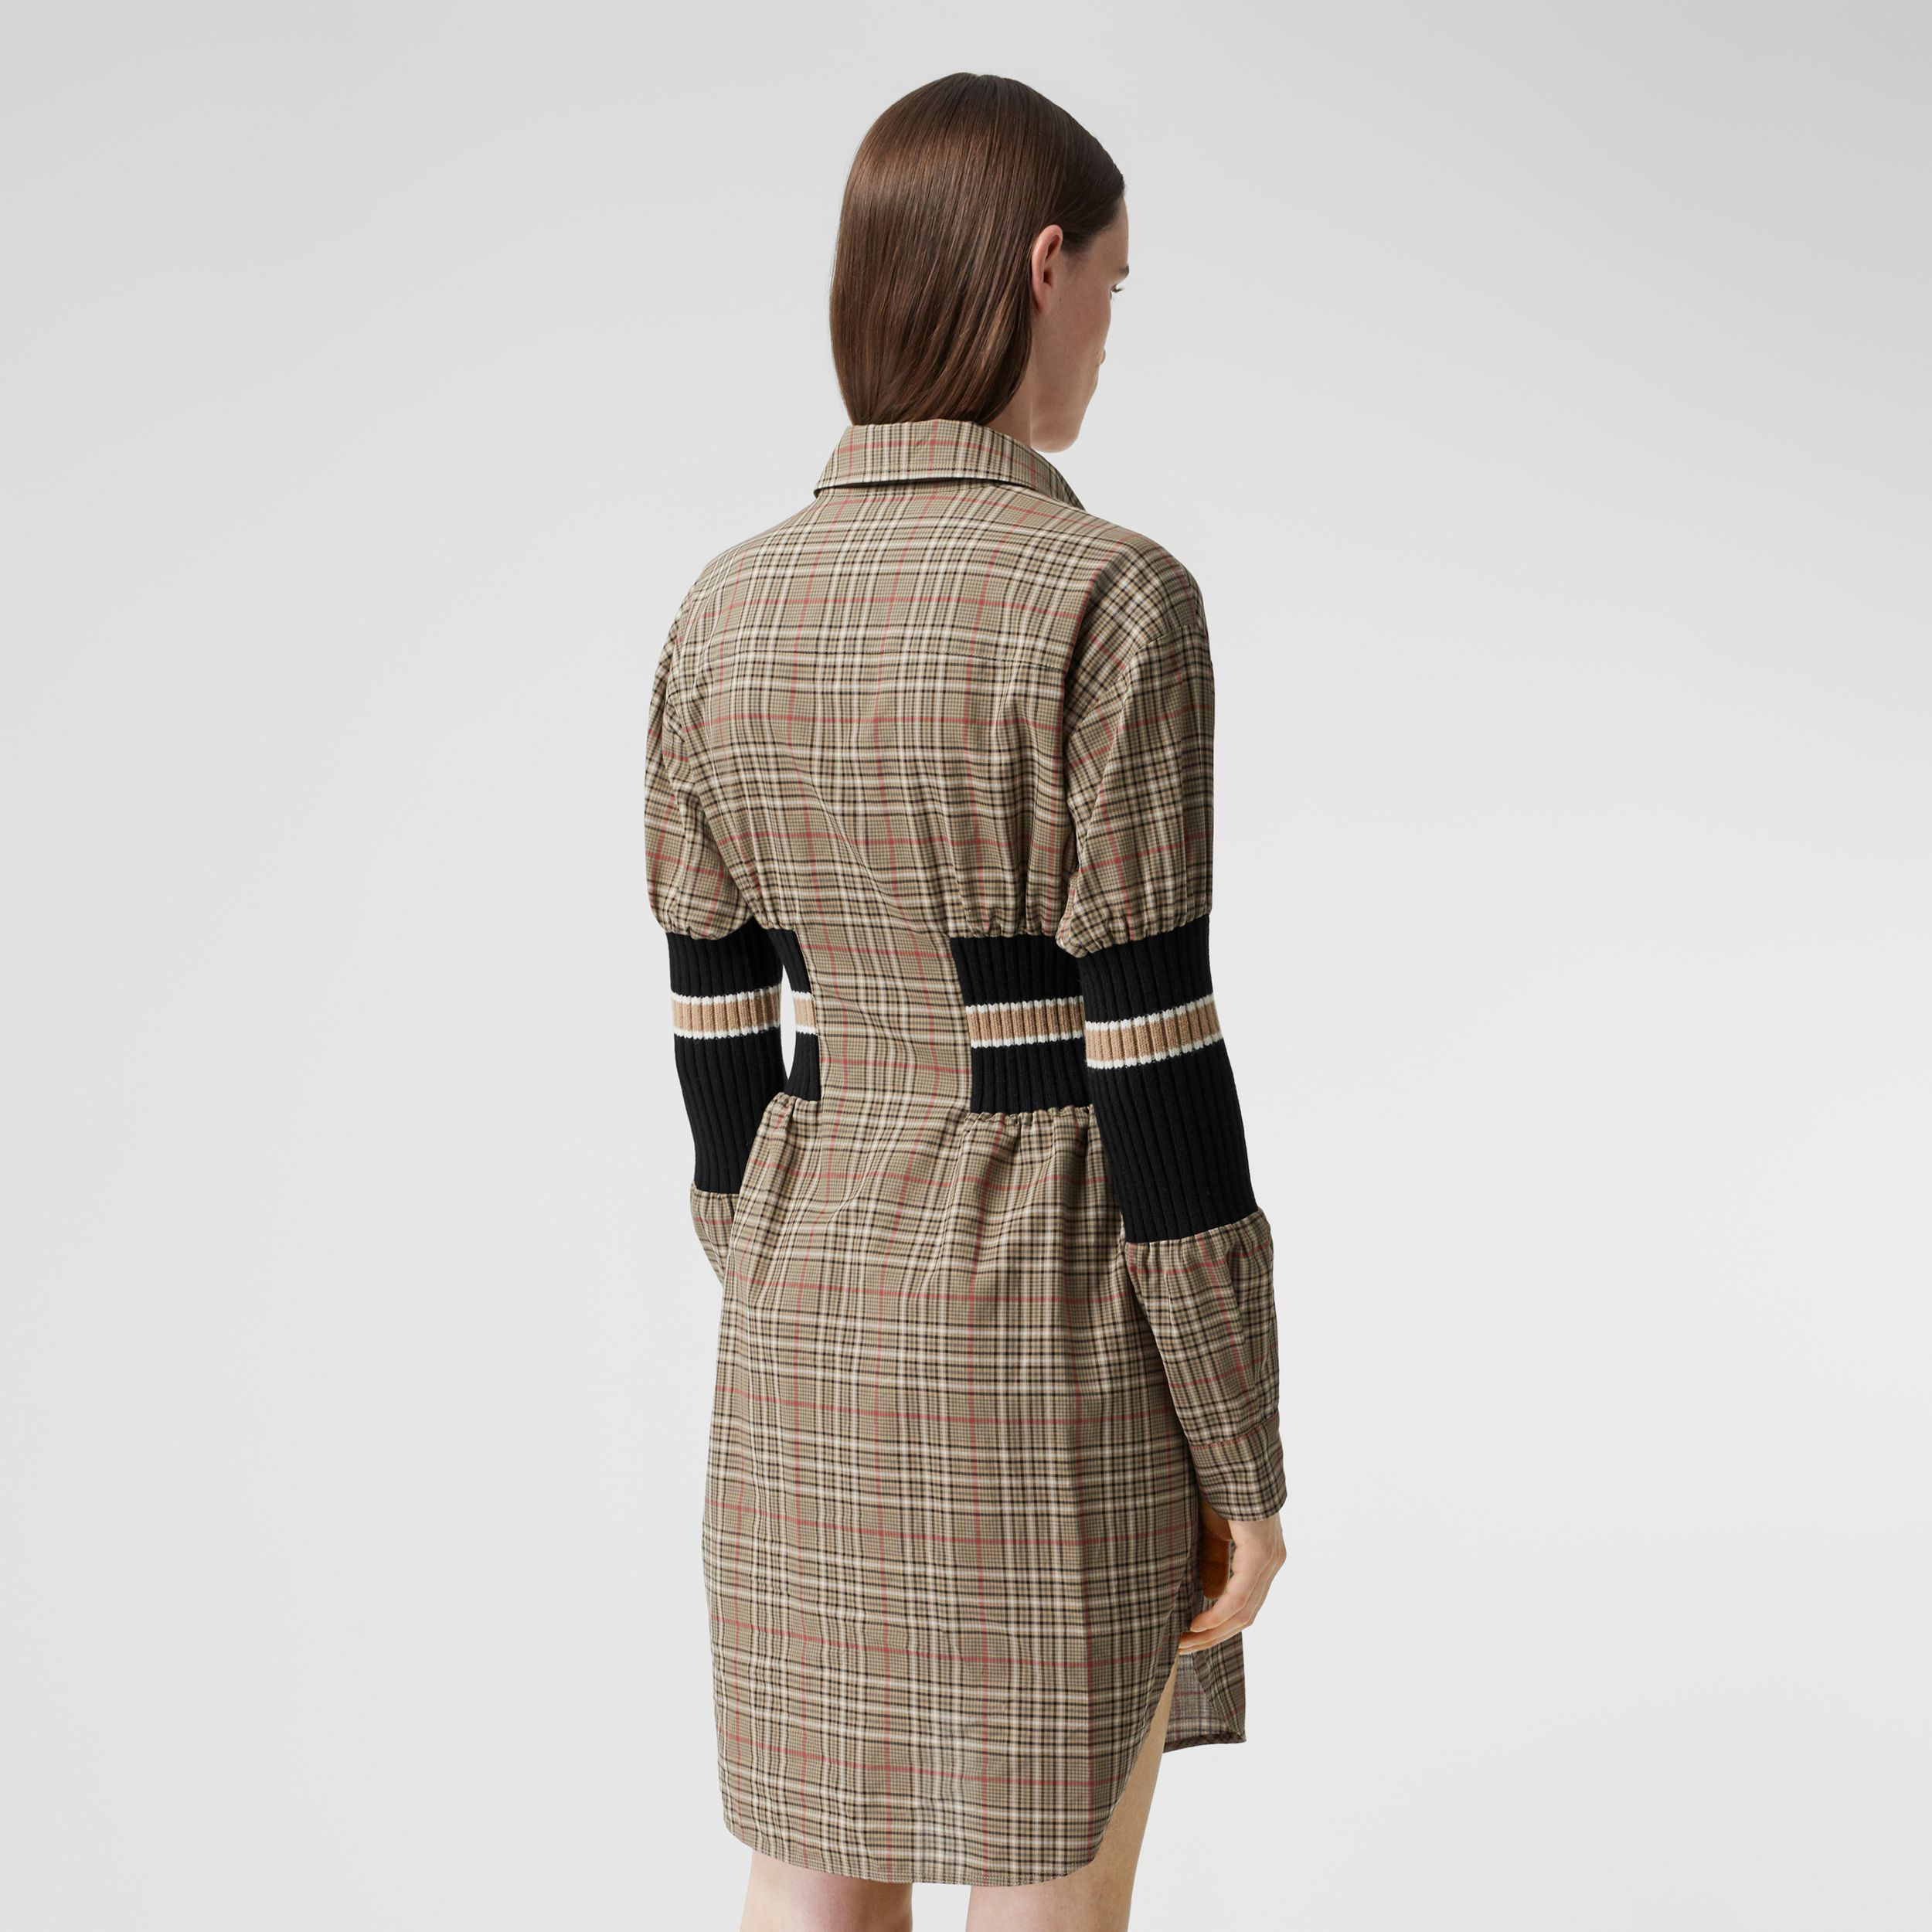 Rib Knit Panel Check Cotton Poplin Shirt Dress in Soft Fawn - Women | Burberry - 3